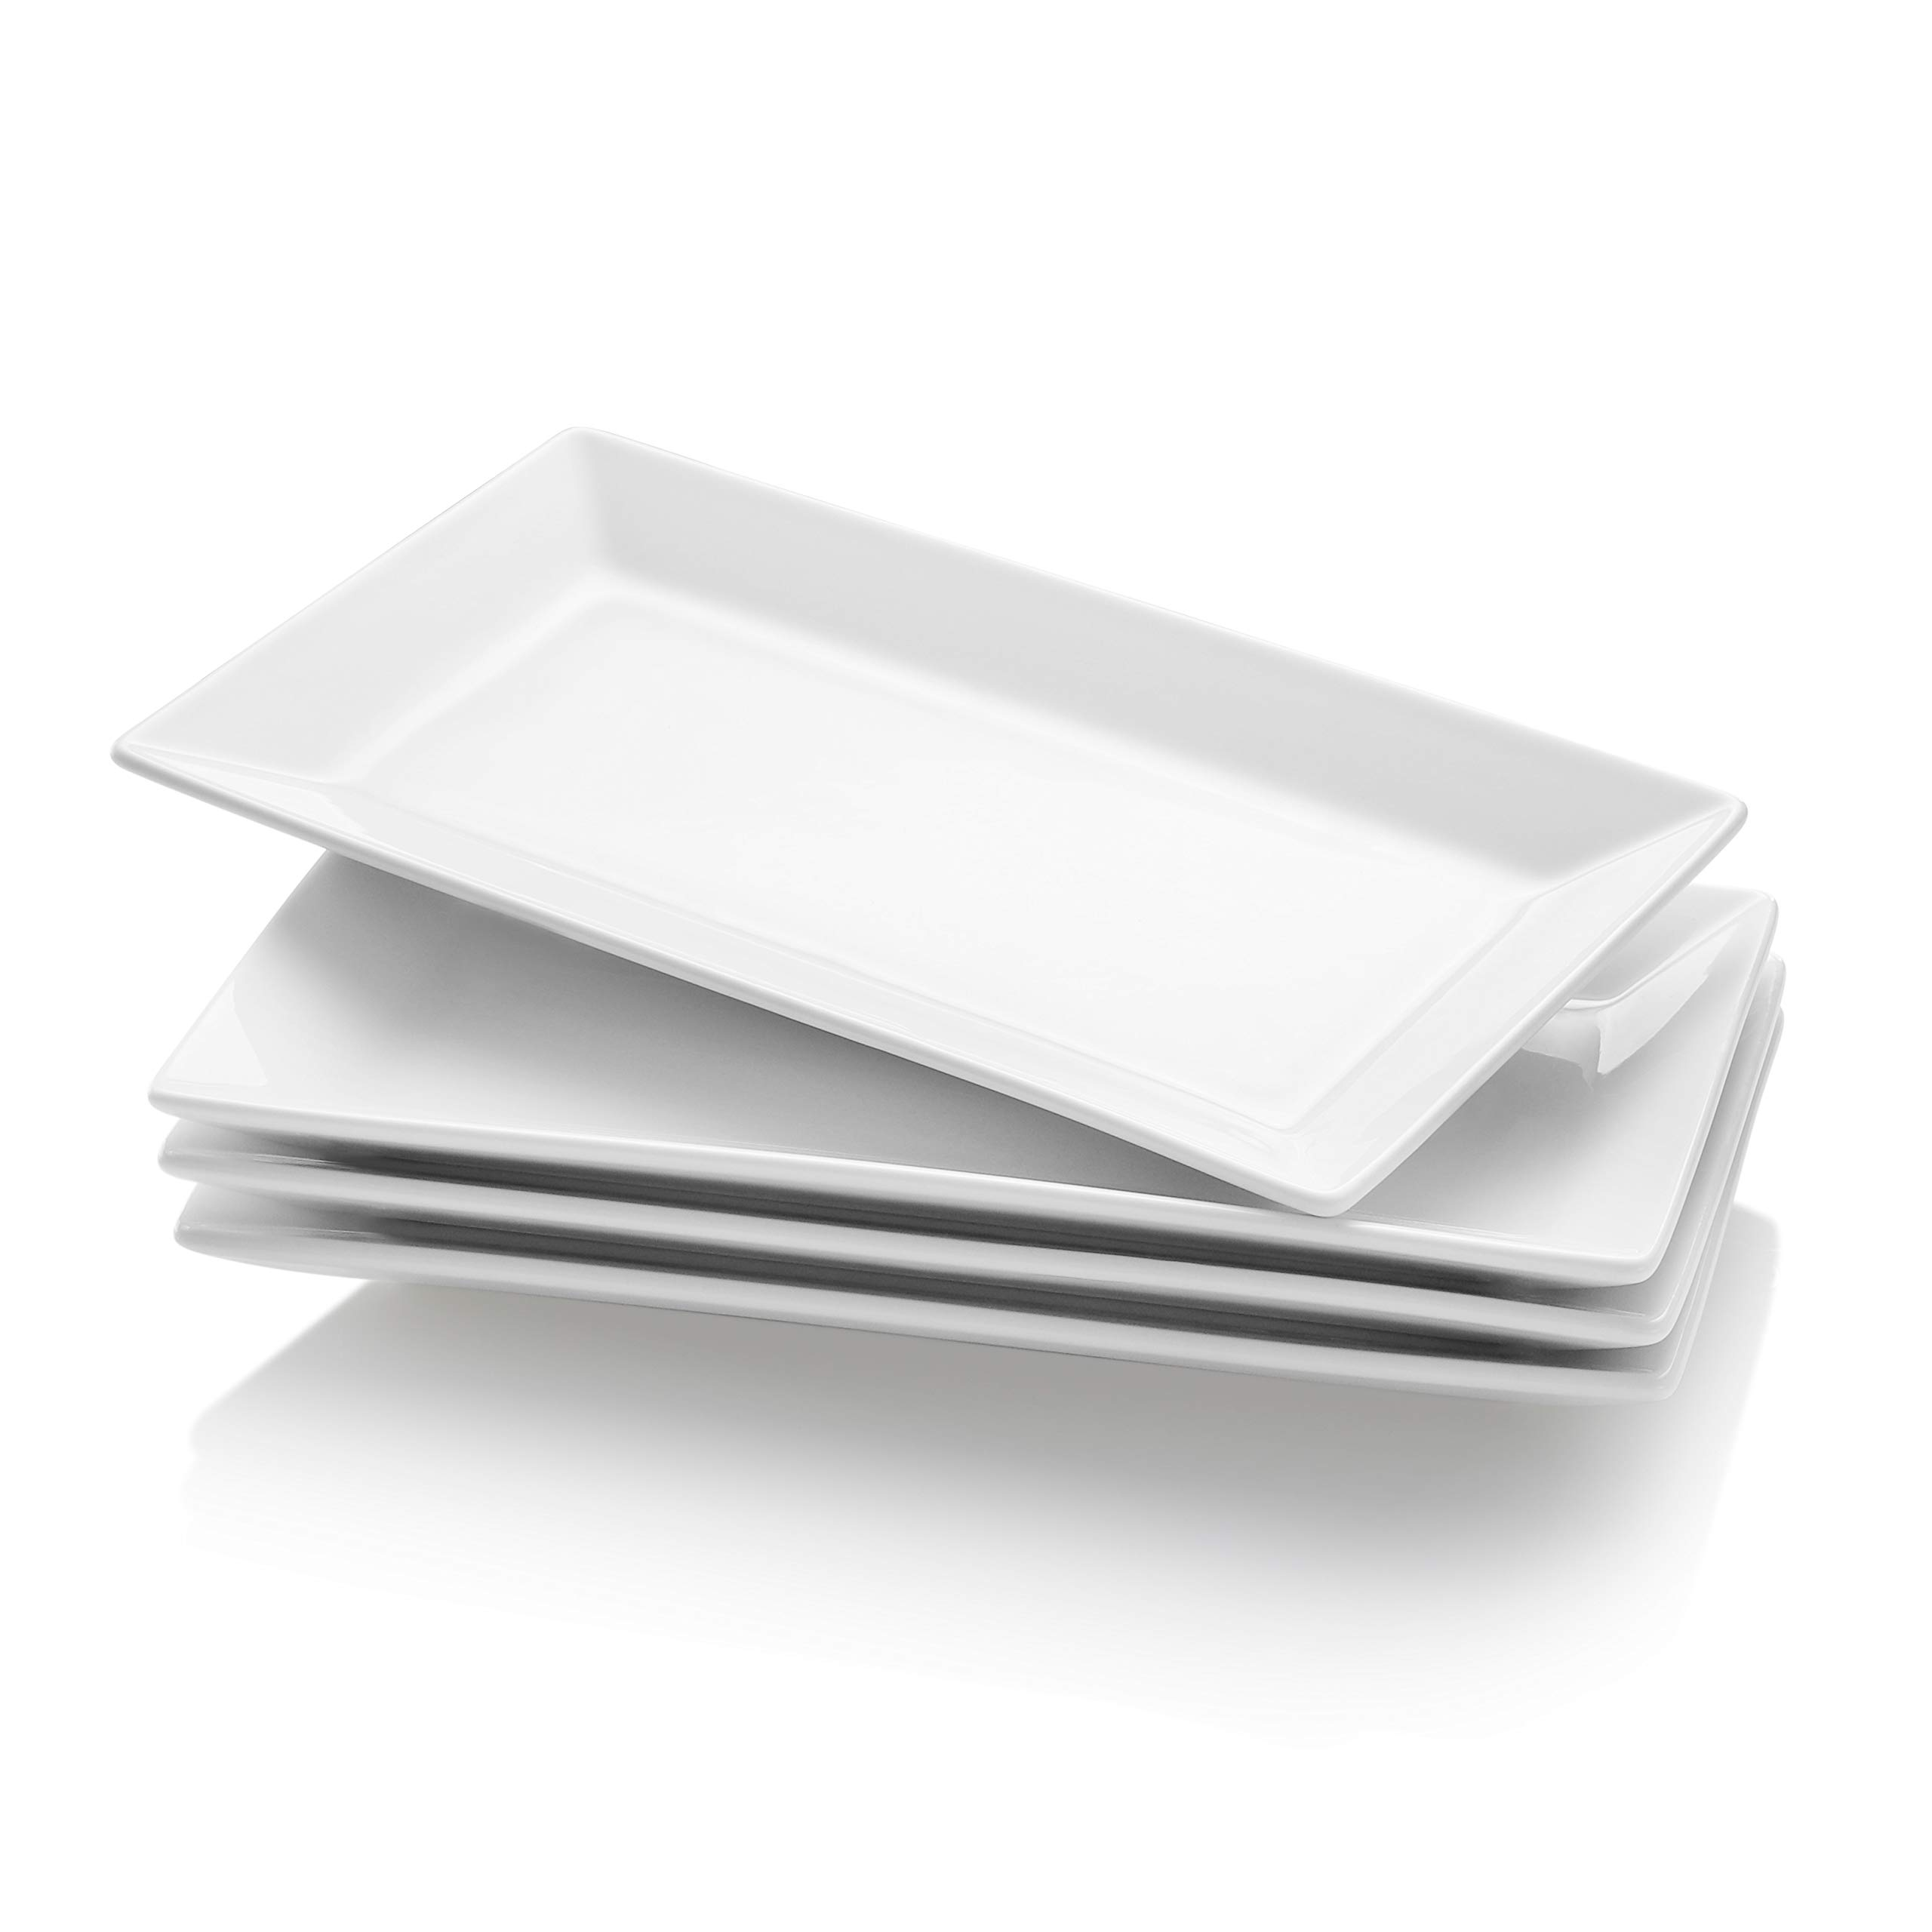 Krockery Porcelain Serving Plates/Rectangular Trays for Parties - 9.8 Inch, White, Set of 4